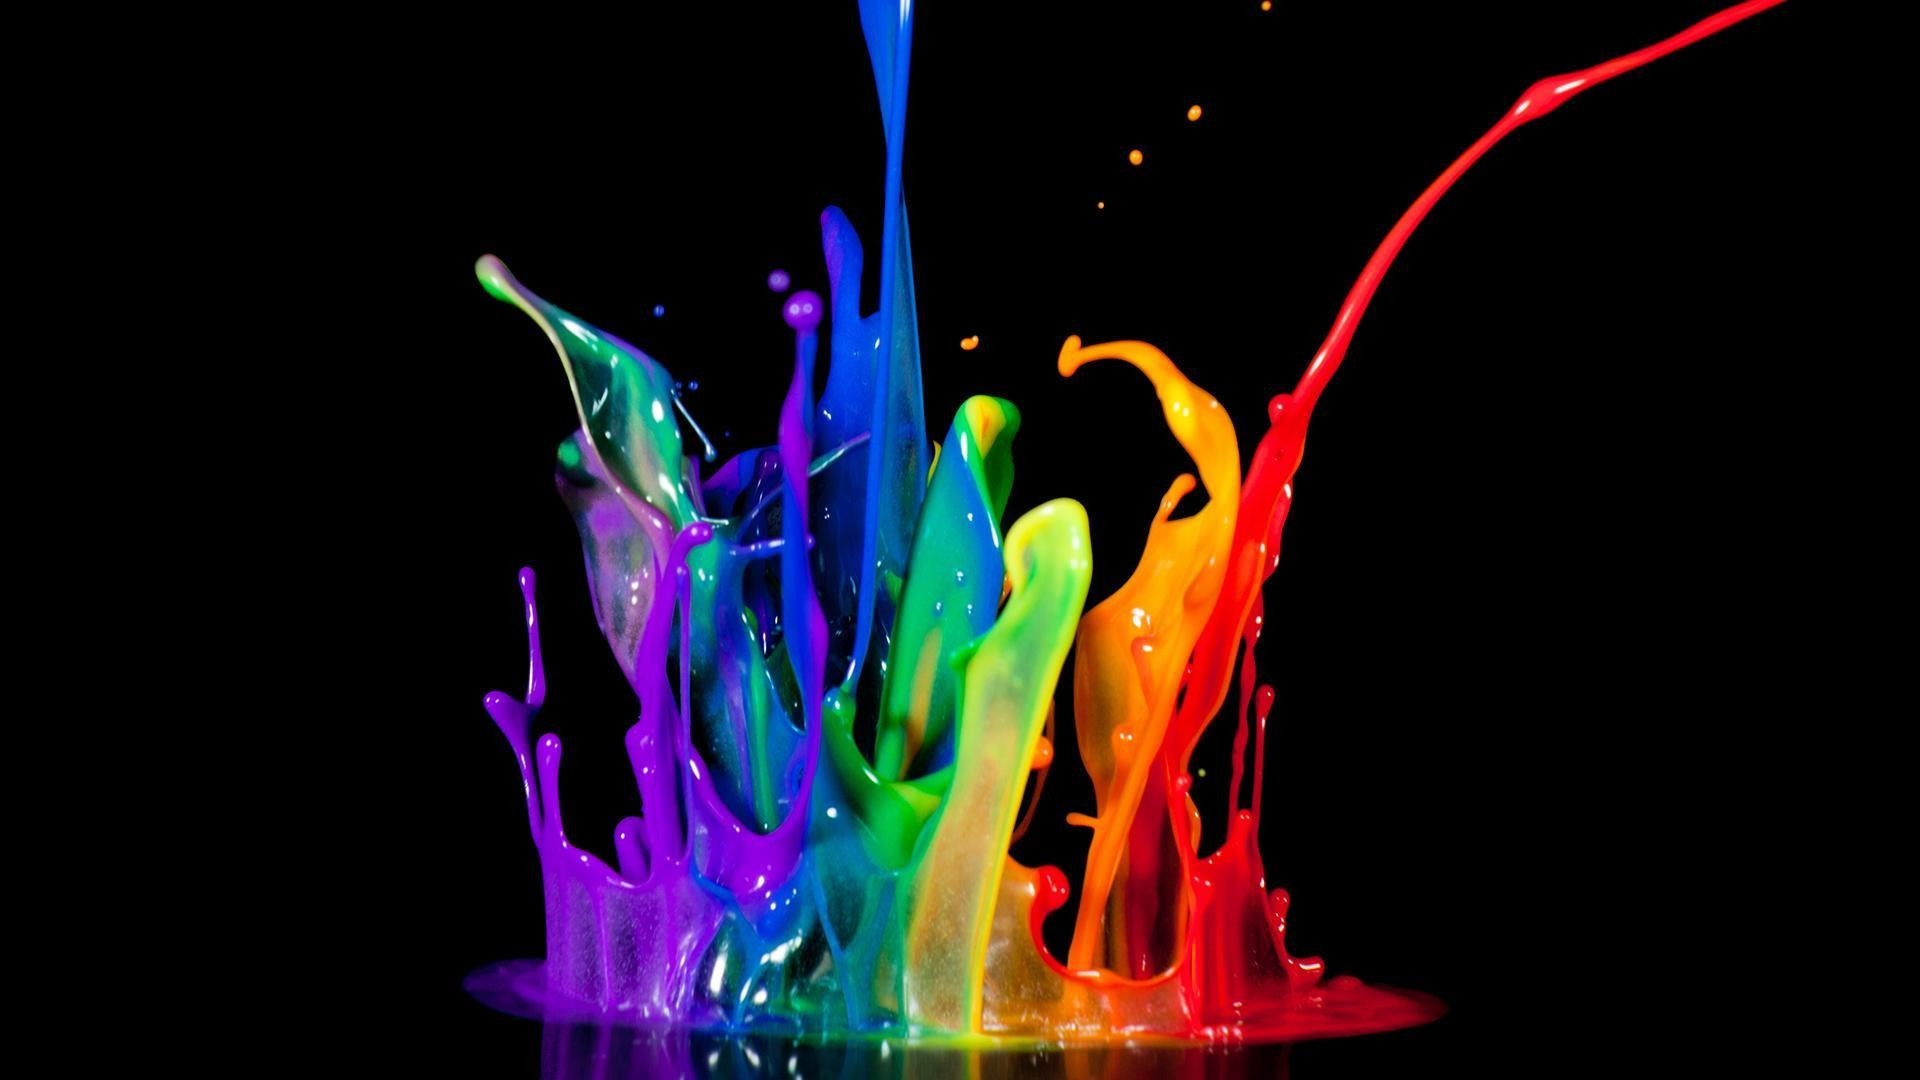 Full HD Wallpapers Solid Color Wallpapers Solid Color Wallpapers 1920×1080